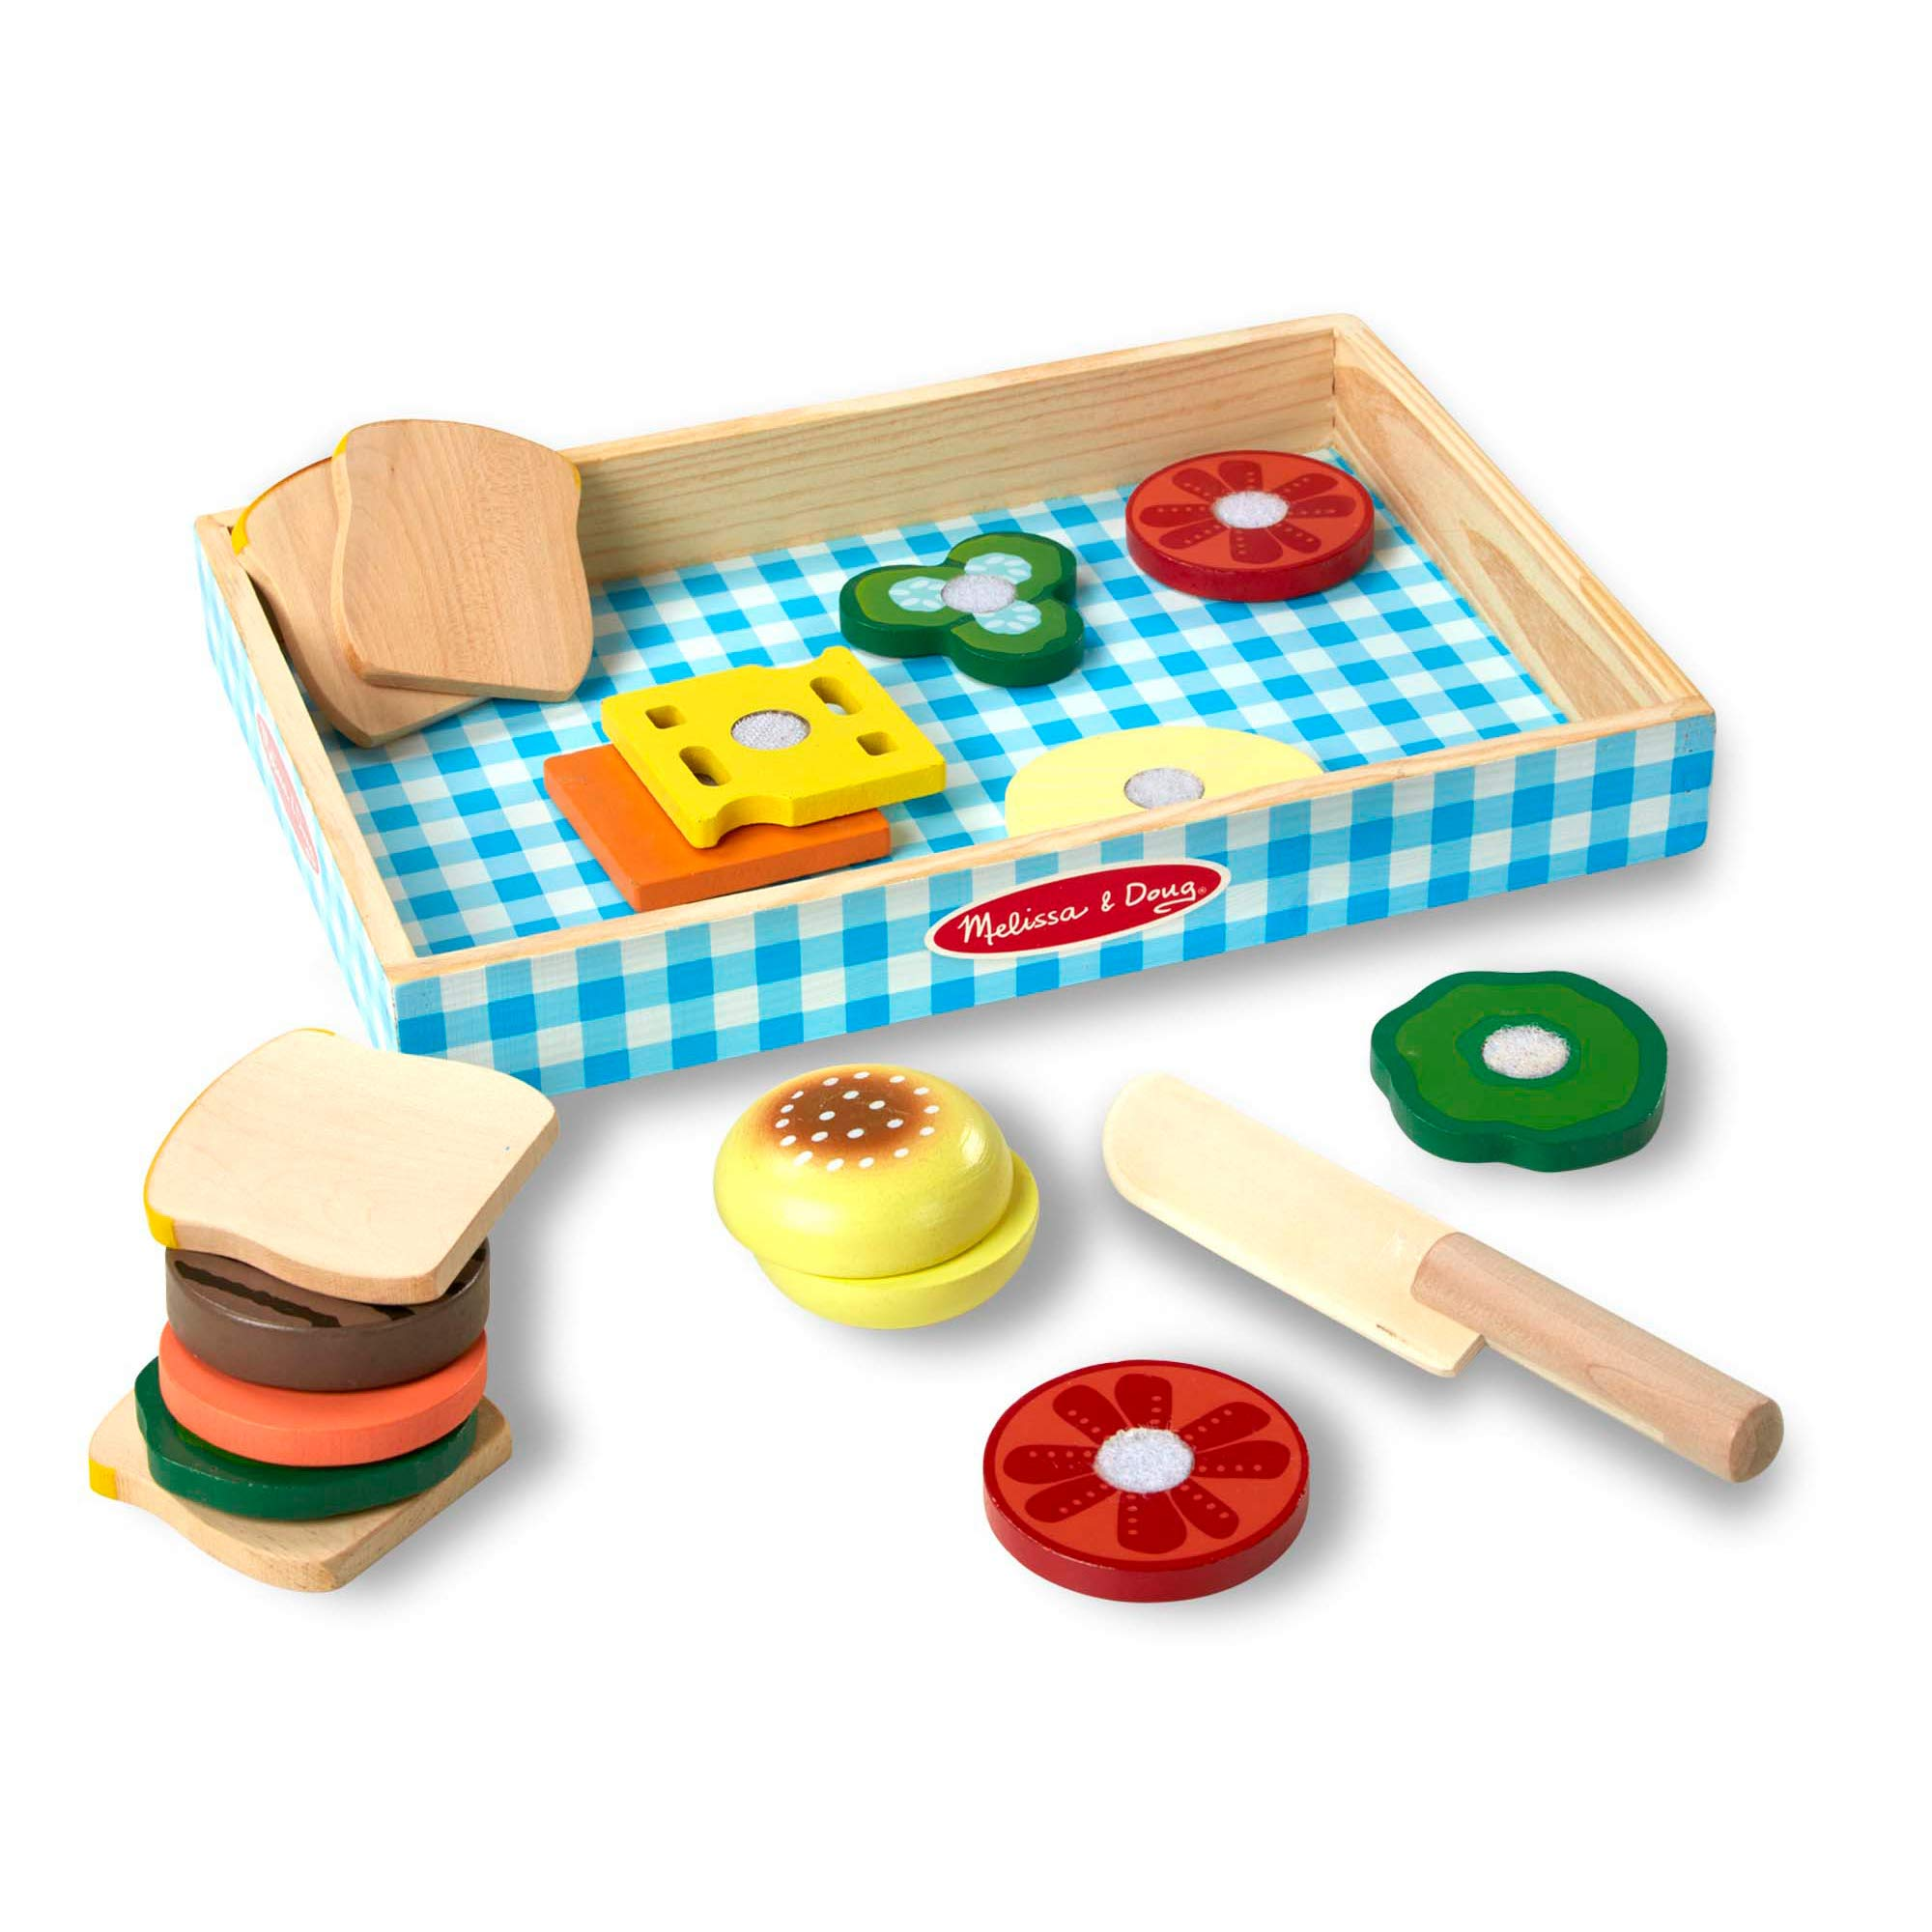 Melissa & Doug Sandwich-Making Set (Wooden Play Food, Wooden Storage Tray, Materials, 16 Pieces, Great Gift for Girls and Boys - Best for 3, 4, and 5 Year Olds) by Melissa & Doug